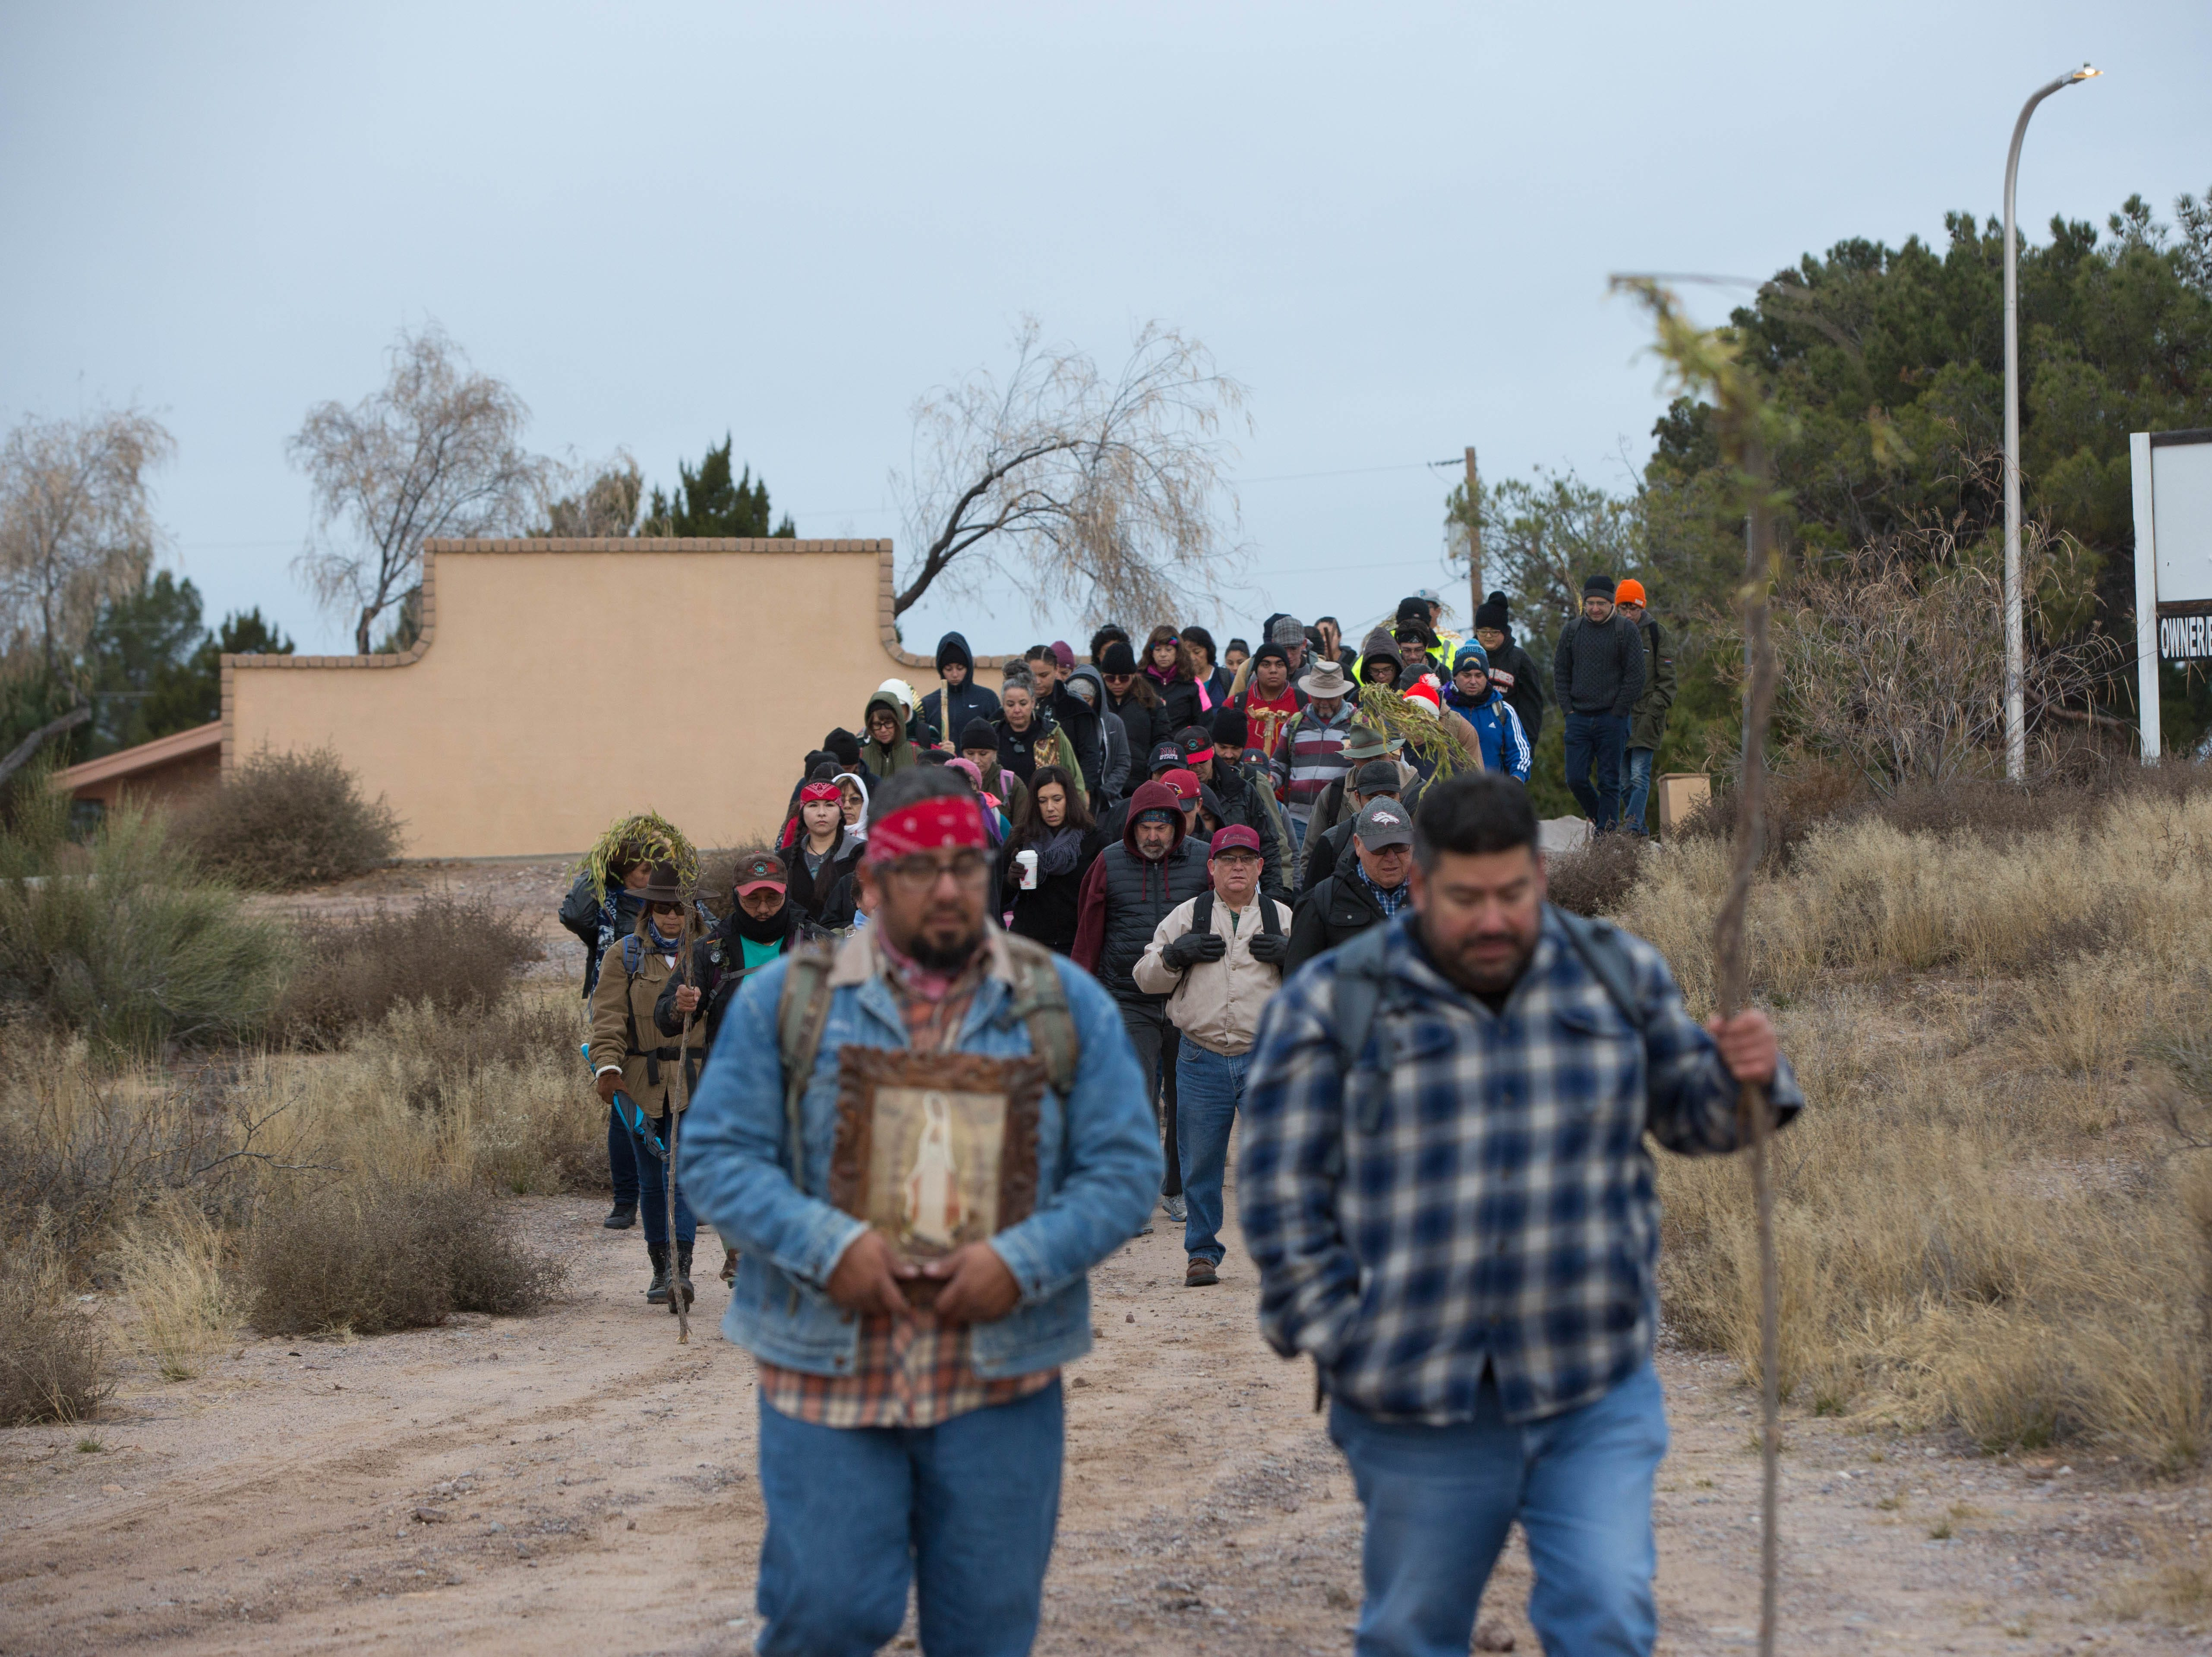 During the second day of the Fiesta of Our Lady of Guadalupe, a pilgrimage is made from the Tortugas Pueblo to Tortugas Mountain on Tuesday Dec.11, 2018. Pilgrims left from the pueblo at 7 a.m.